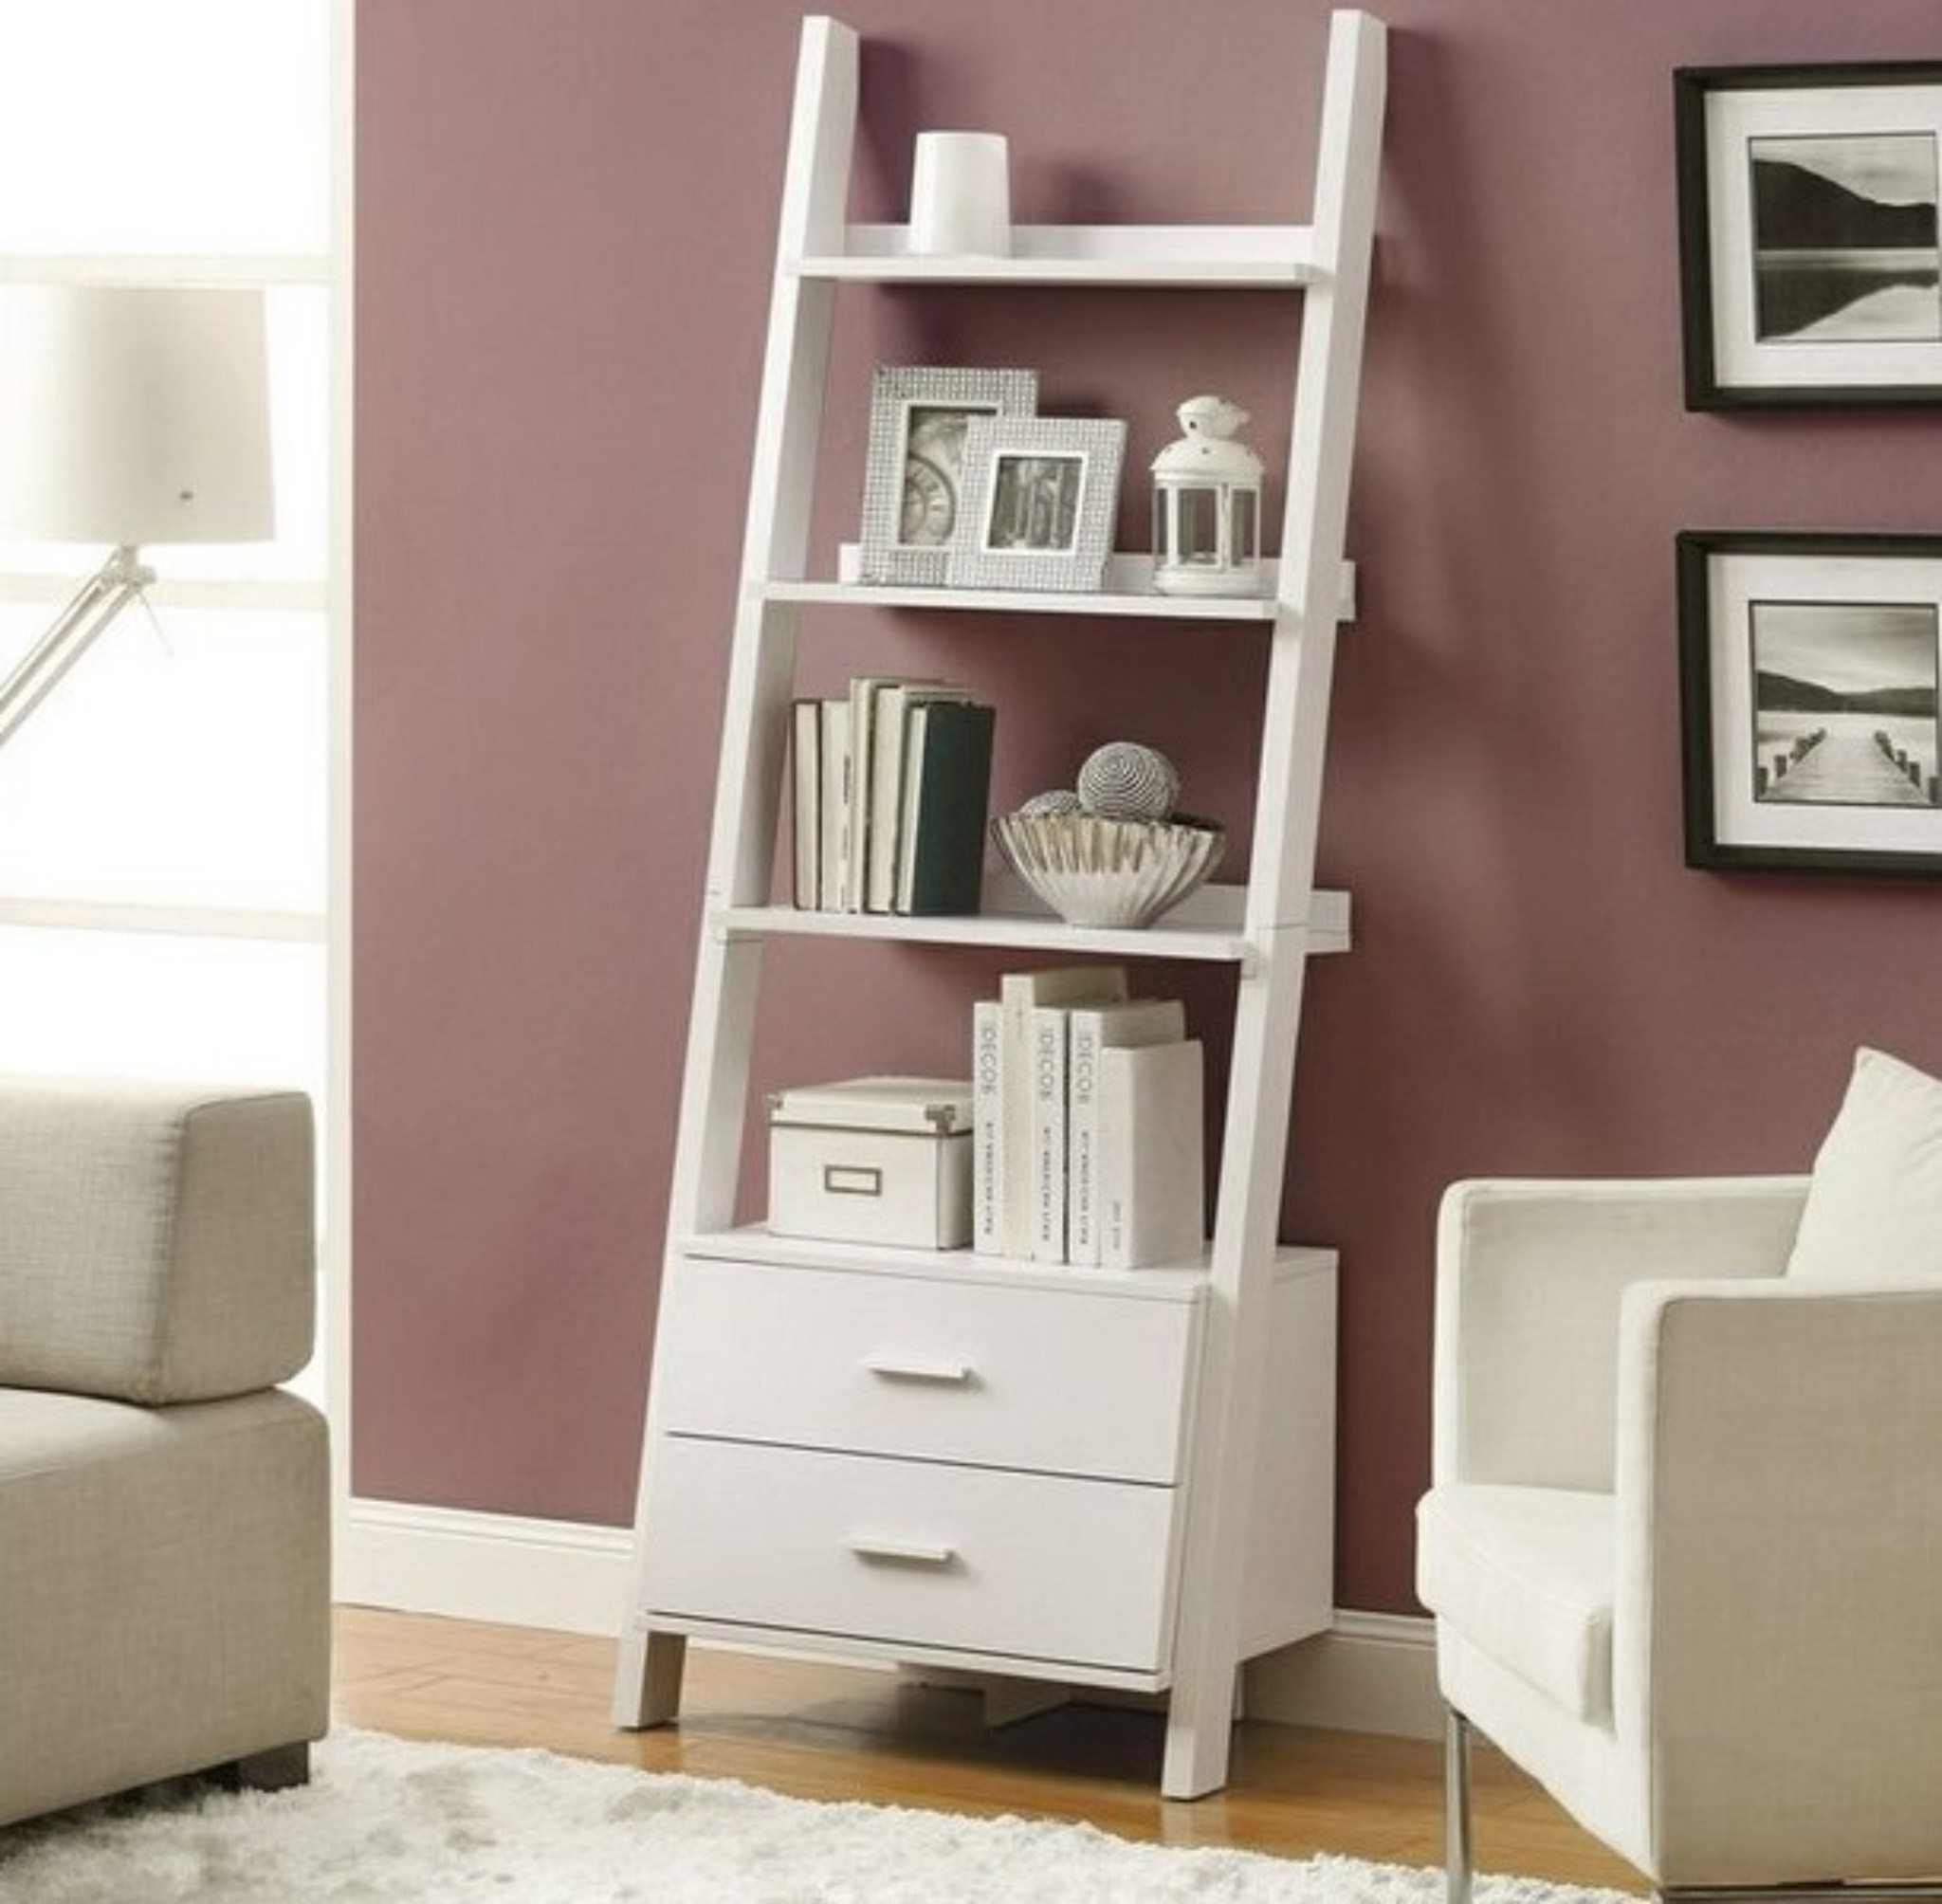 Best And Newest Ballard Design Wall Shelves Within Ballard Designs Bookcases (View 8 of 15)